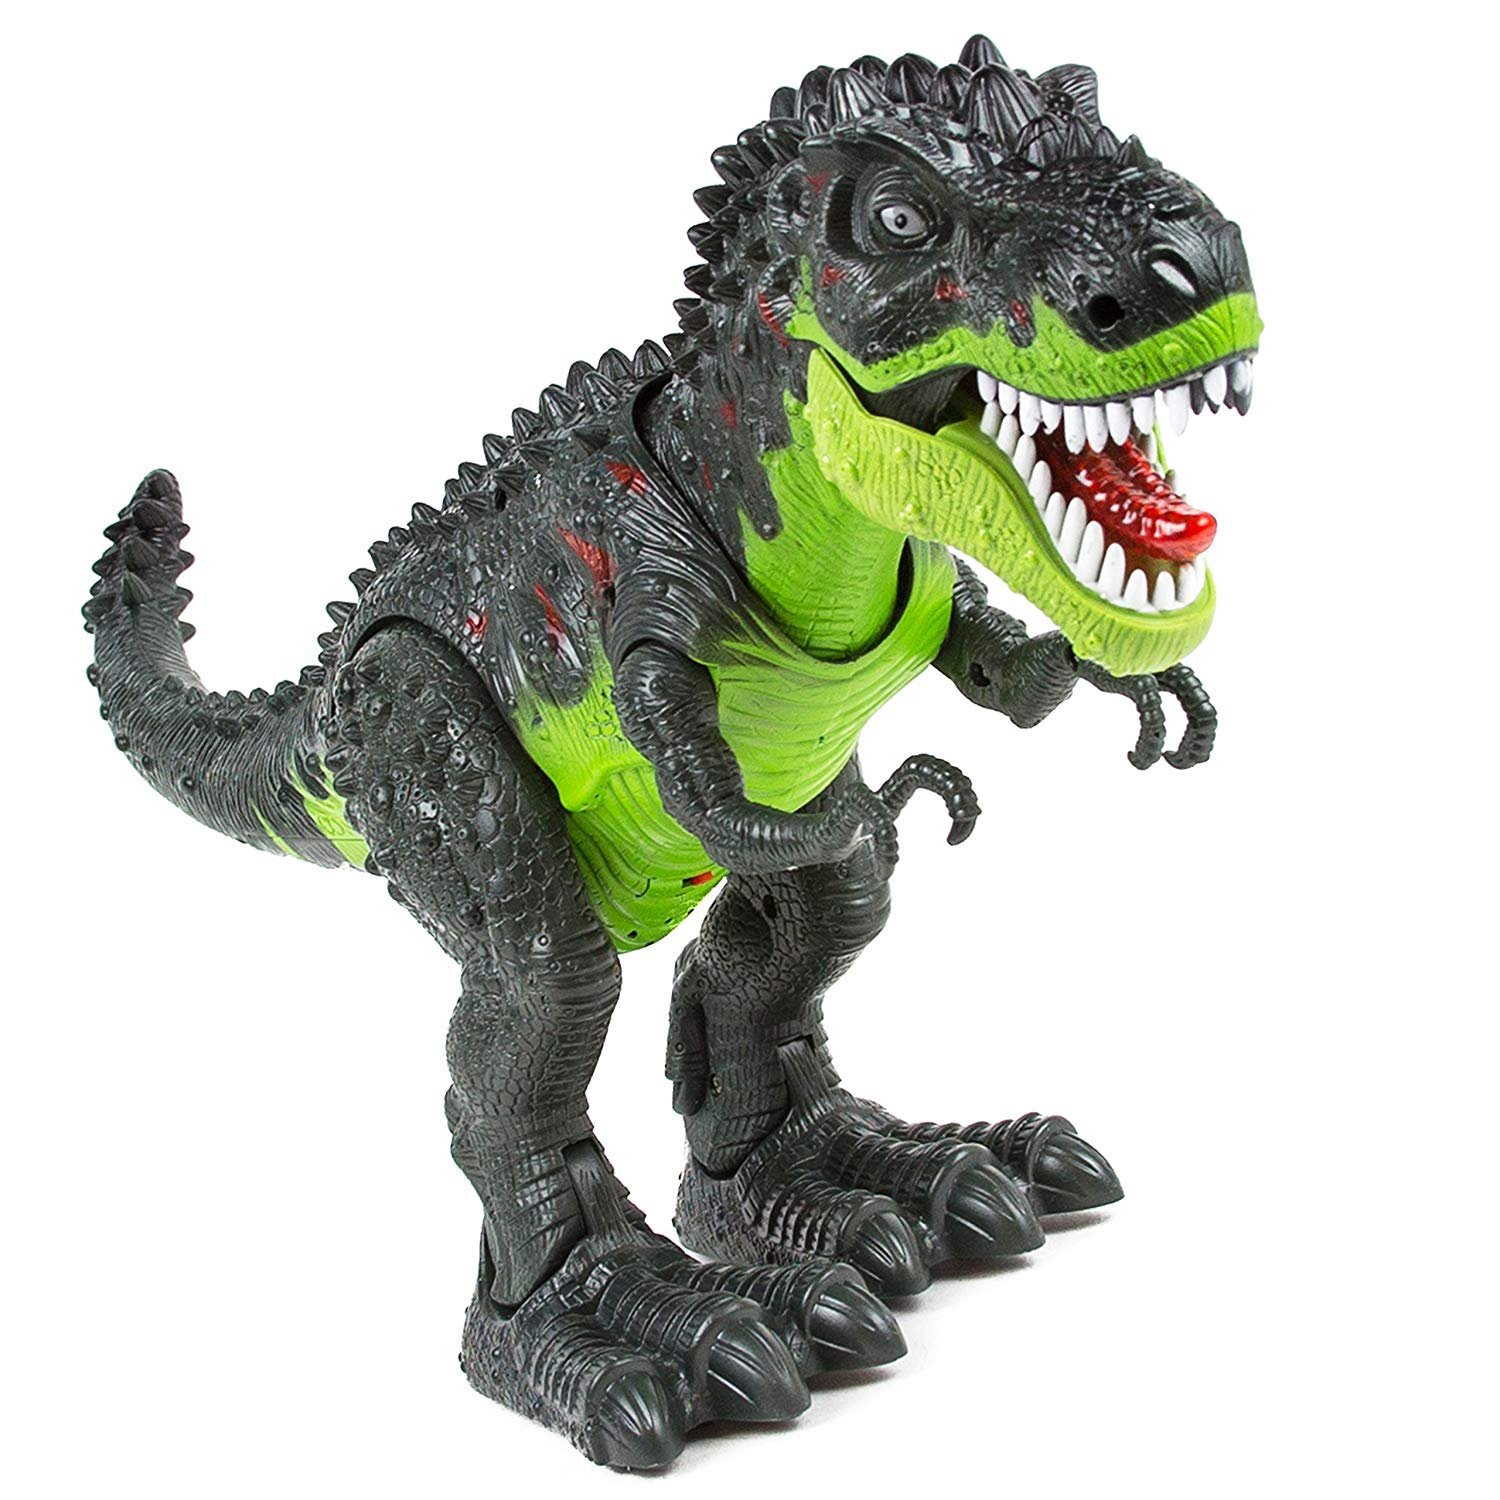 SY WonderPlay Tyrannosaurus T-Rex Dinosaur with Lights and Realistic Sounds Action Figure Toy - Light Up Eyes, Awesome Sounds - Walks on Its Own! - Great Gift Boys 3+,Battery Operate (Green) by SY (Image #1)